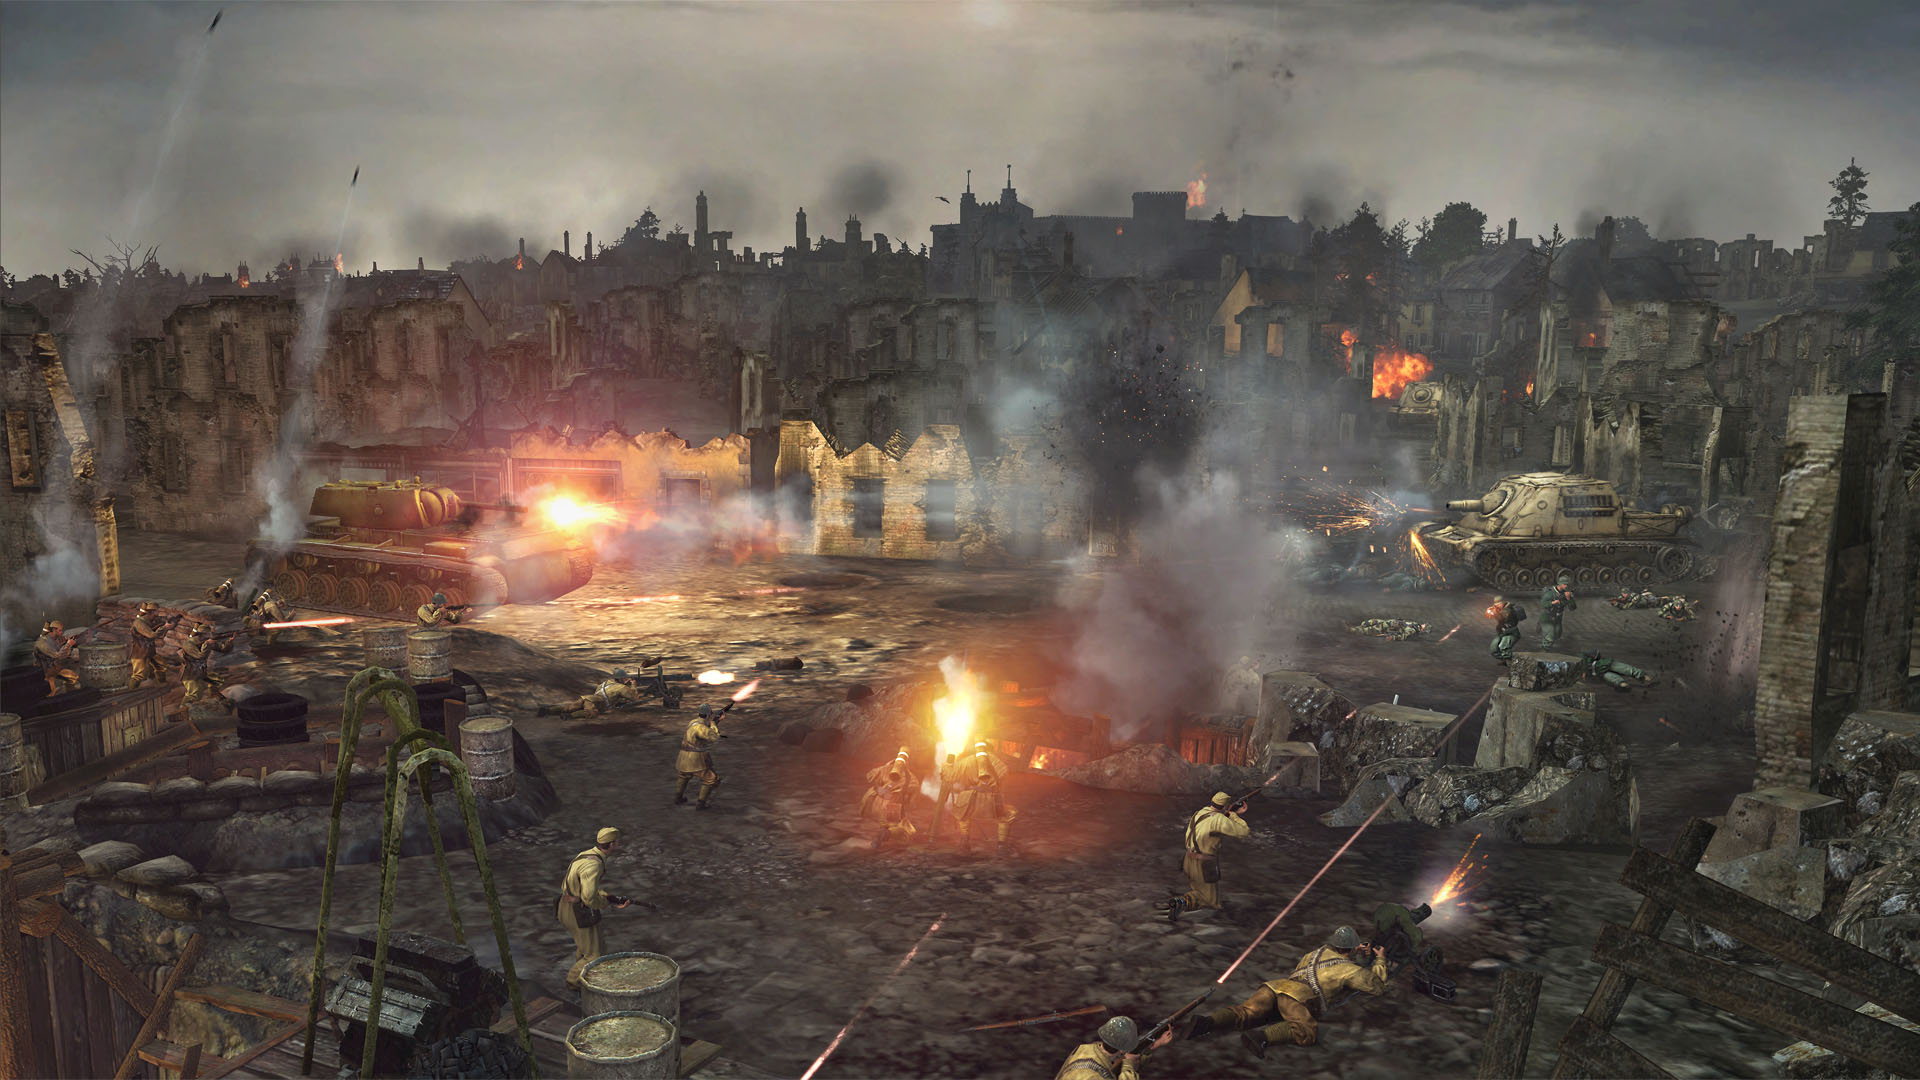 C:UsersИлонаAppDataLocalMicrosoftWindowsINetCacheContent.WordCompany of Heroes.jpg